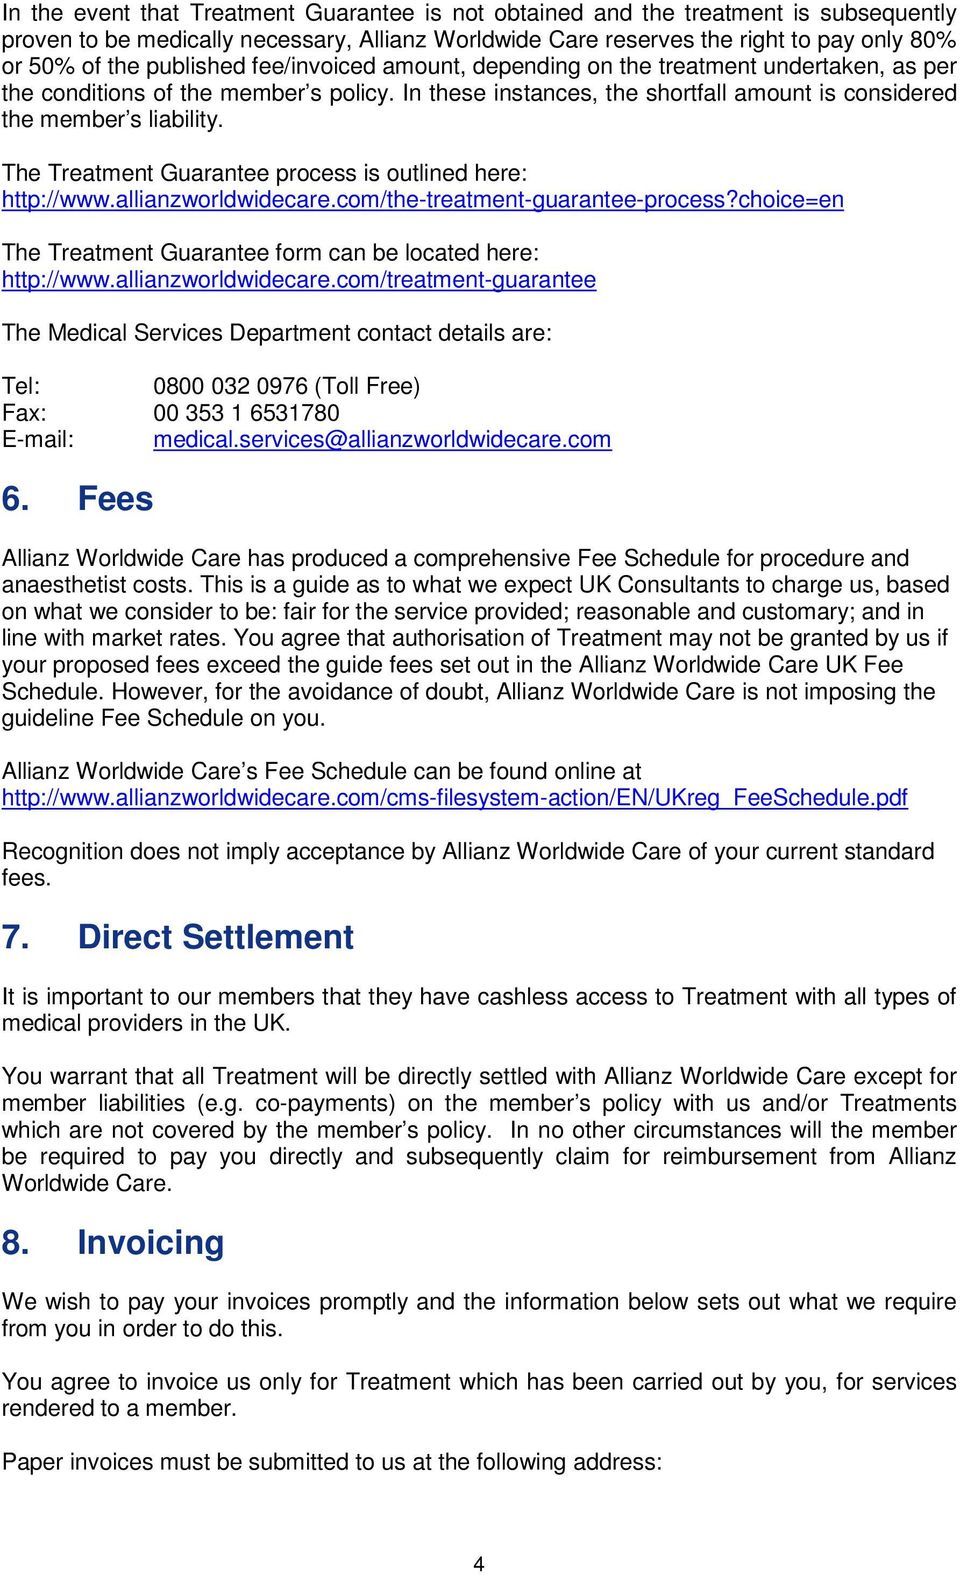 The Treatment Guarantee process is outlined here: http://www.allianzworldwidecare.com/the-treatment-guarantee-process?choice=en The Treatment Guarantee form can be located here: http://www.